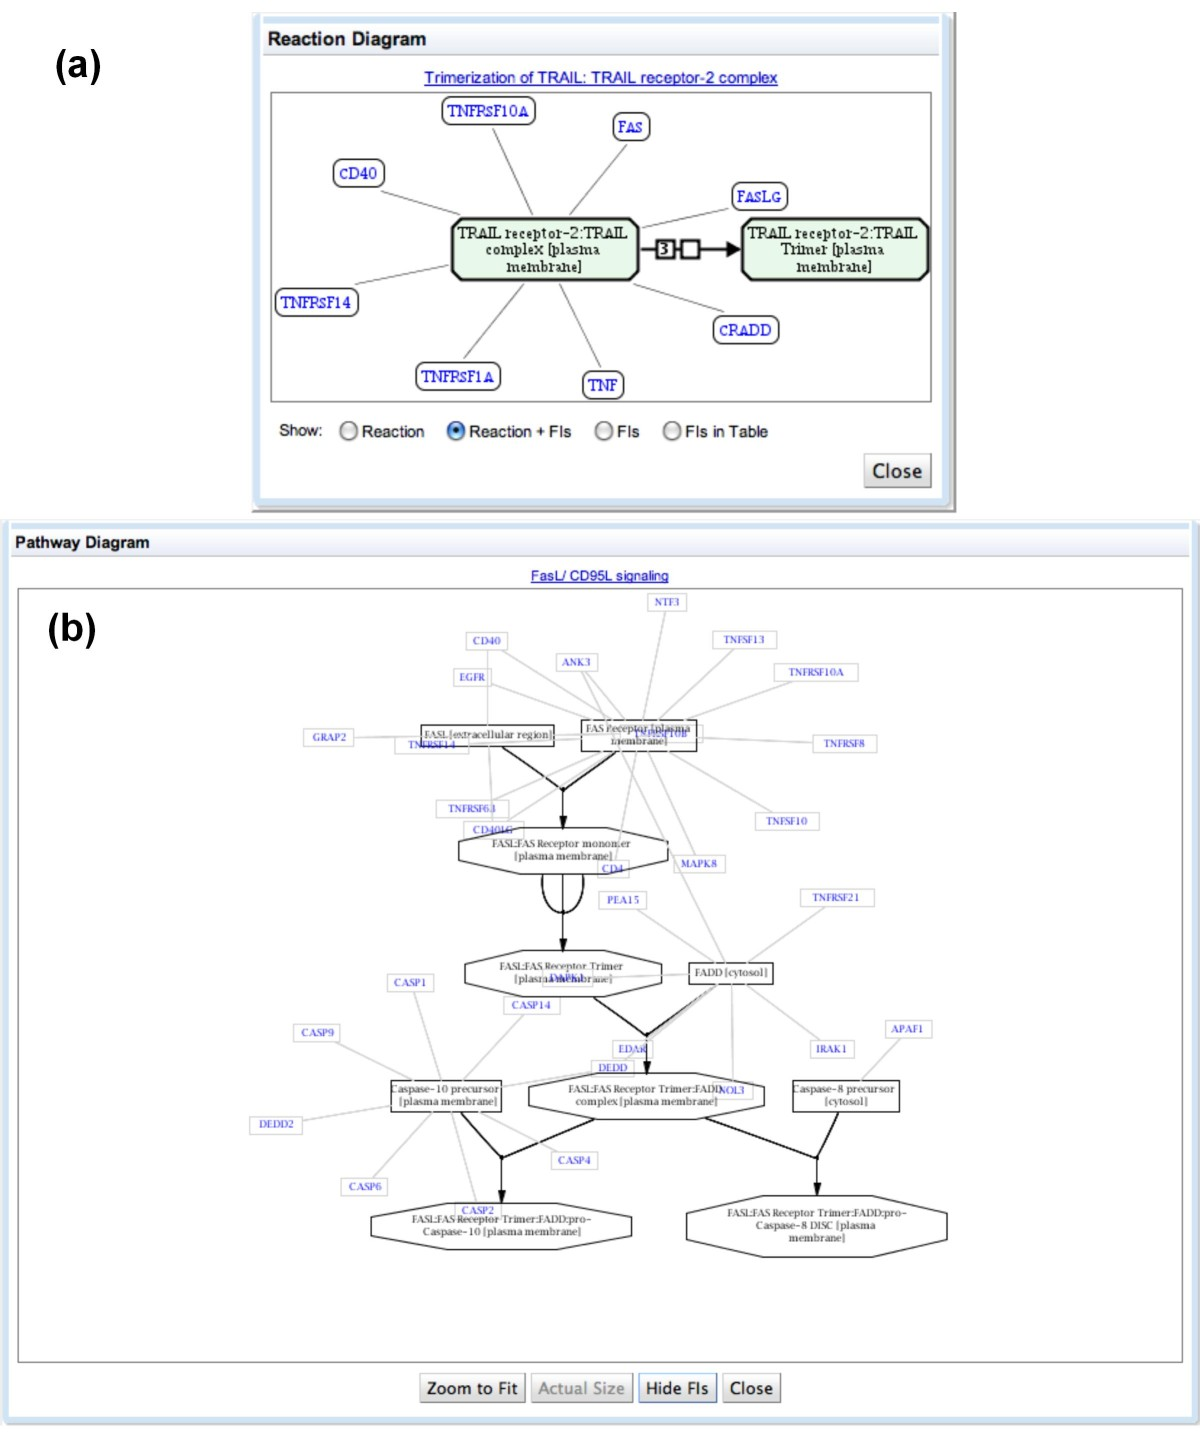 https://static-content.springer.com/image/art%3A10.1186%2Fgb-2010-11-5-r53/MediaObjects/13059_2010_Article_2346_Fig10_HTML.jpg